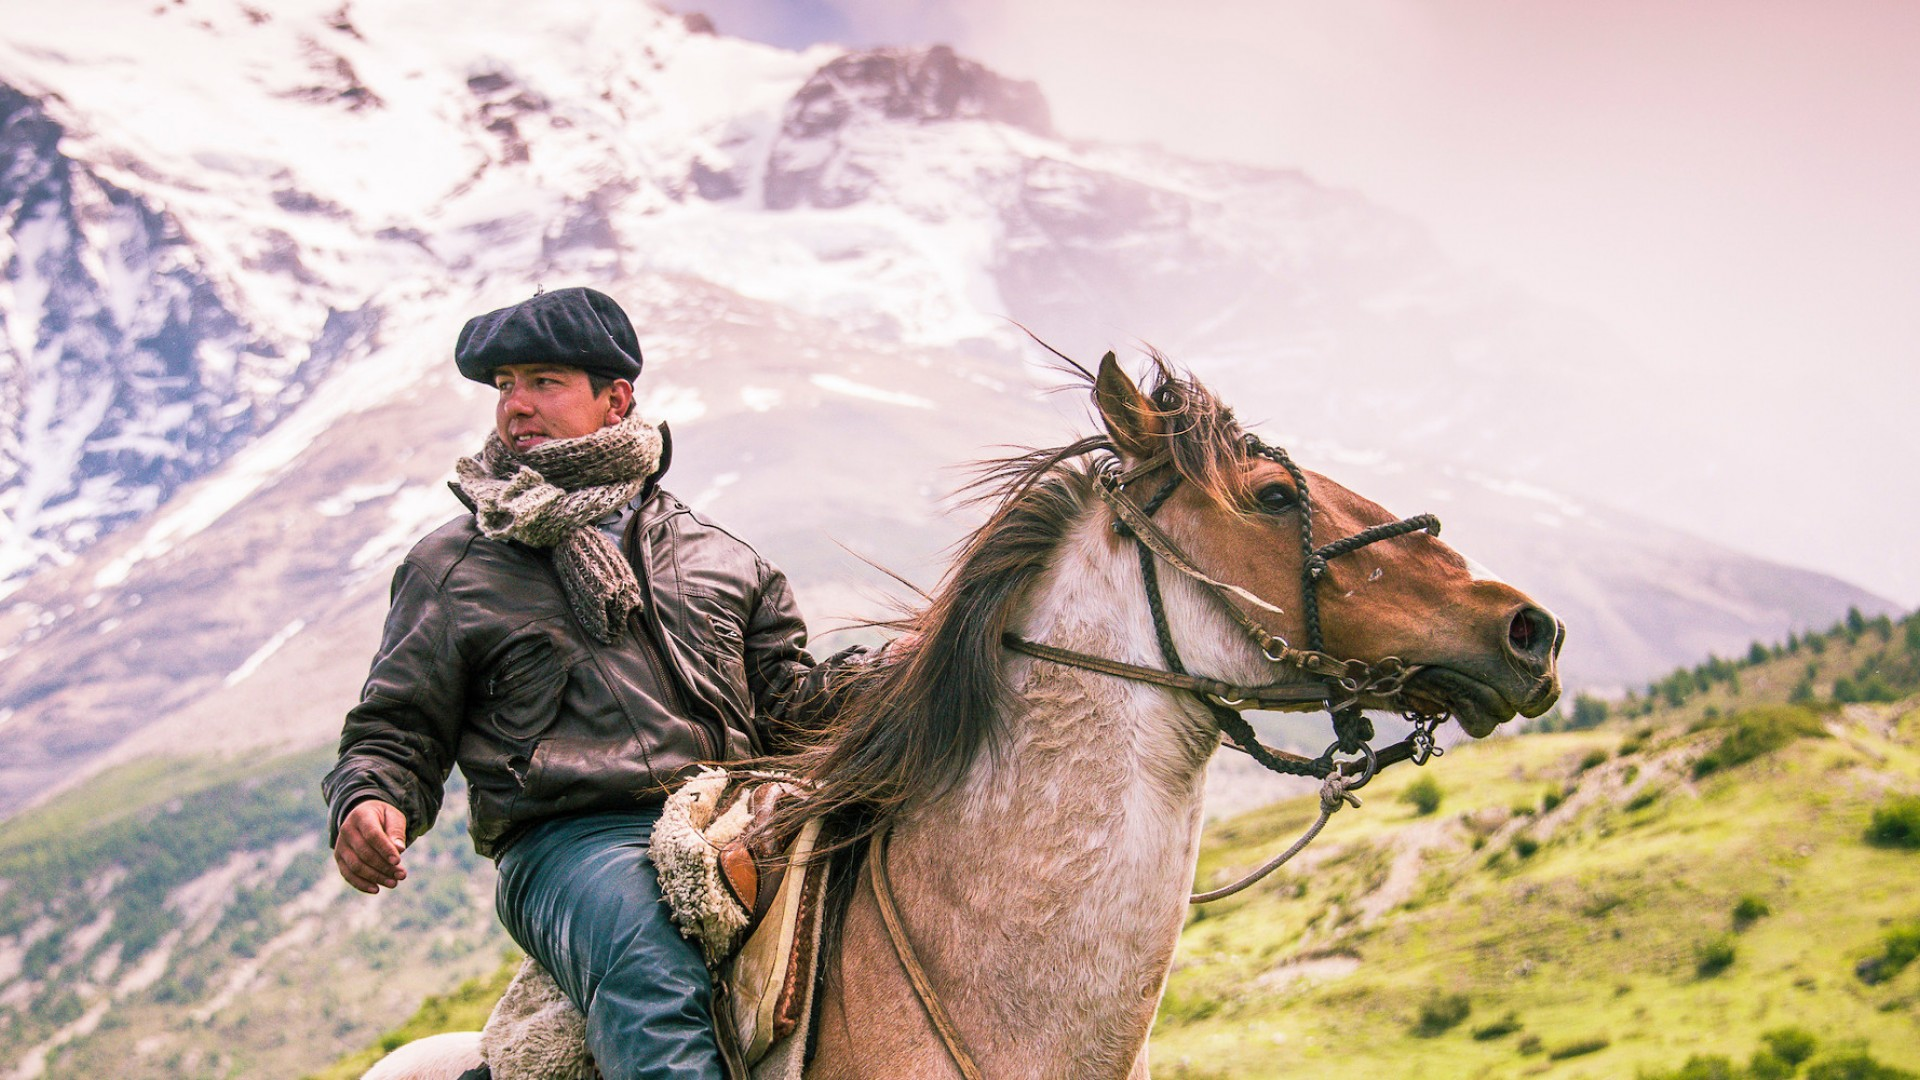 horse and rider in patagonia highlands